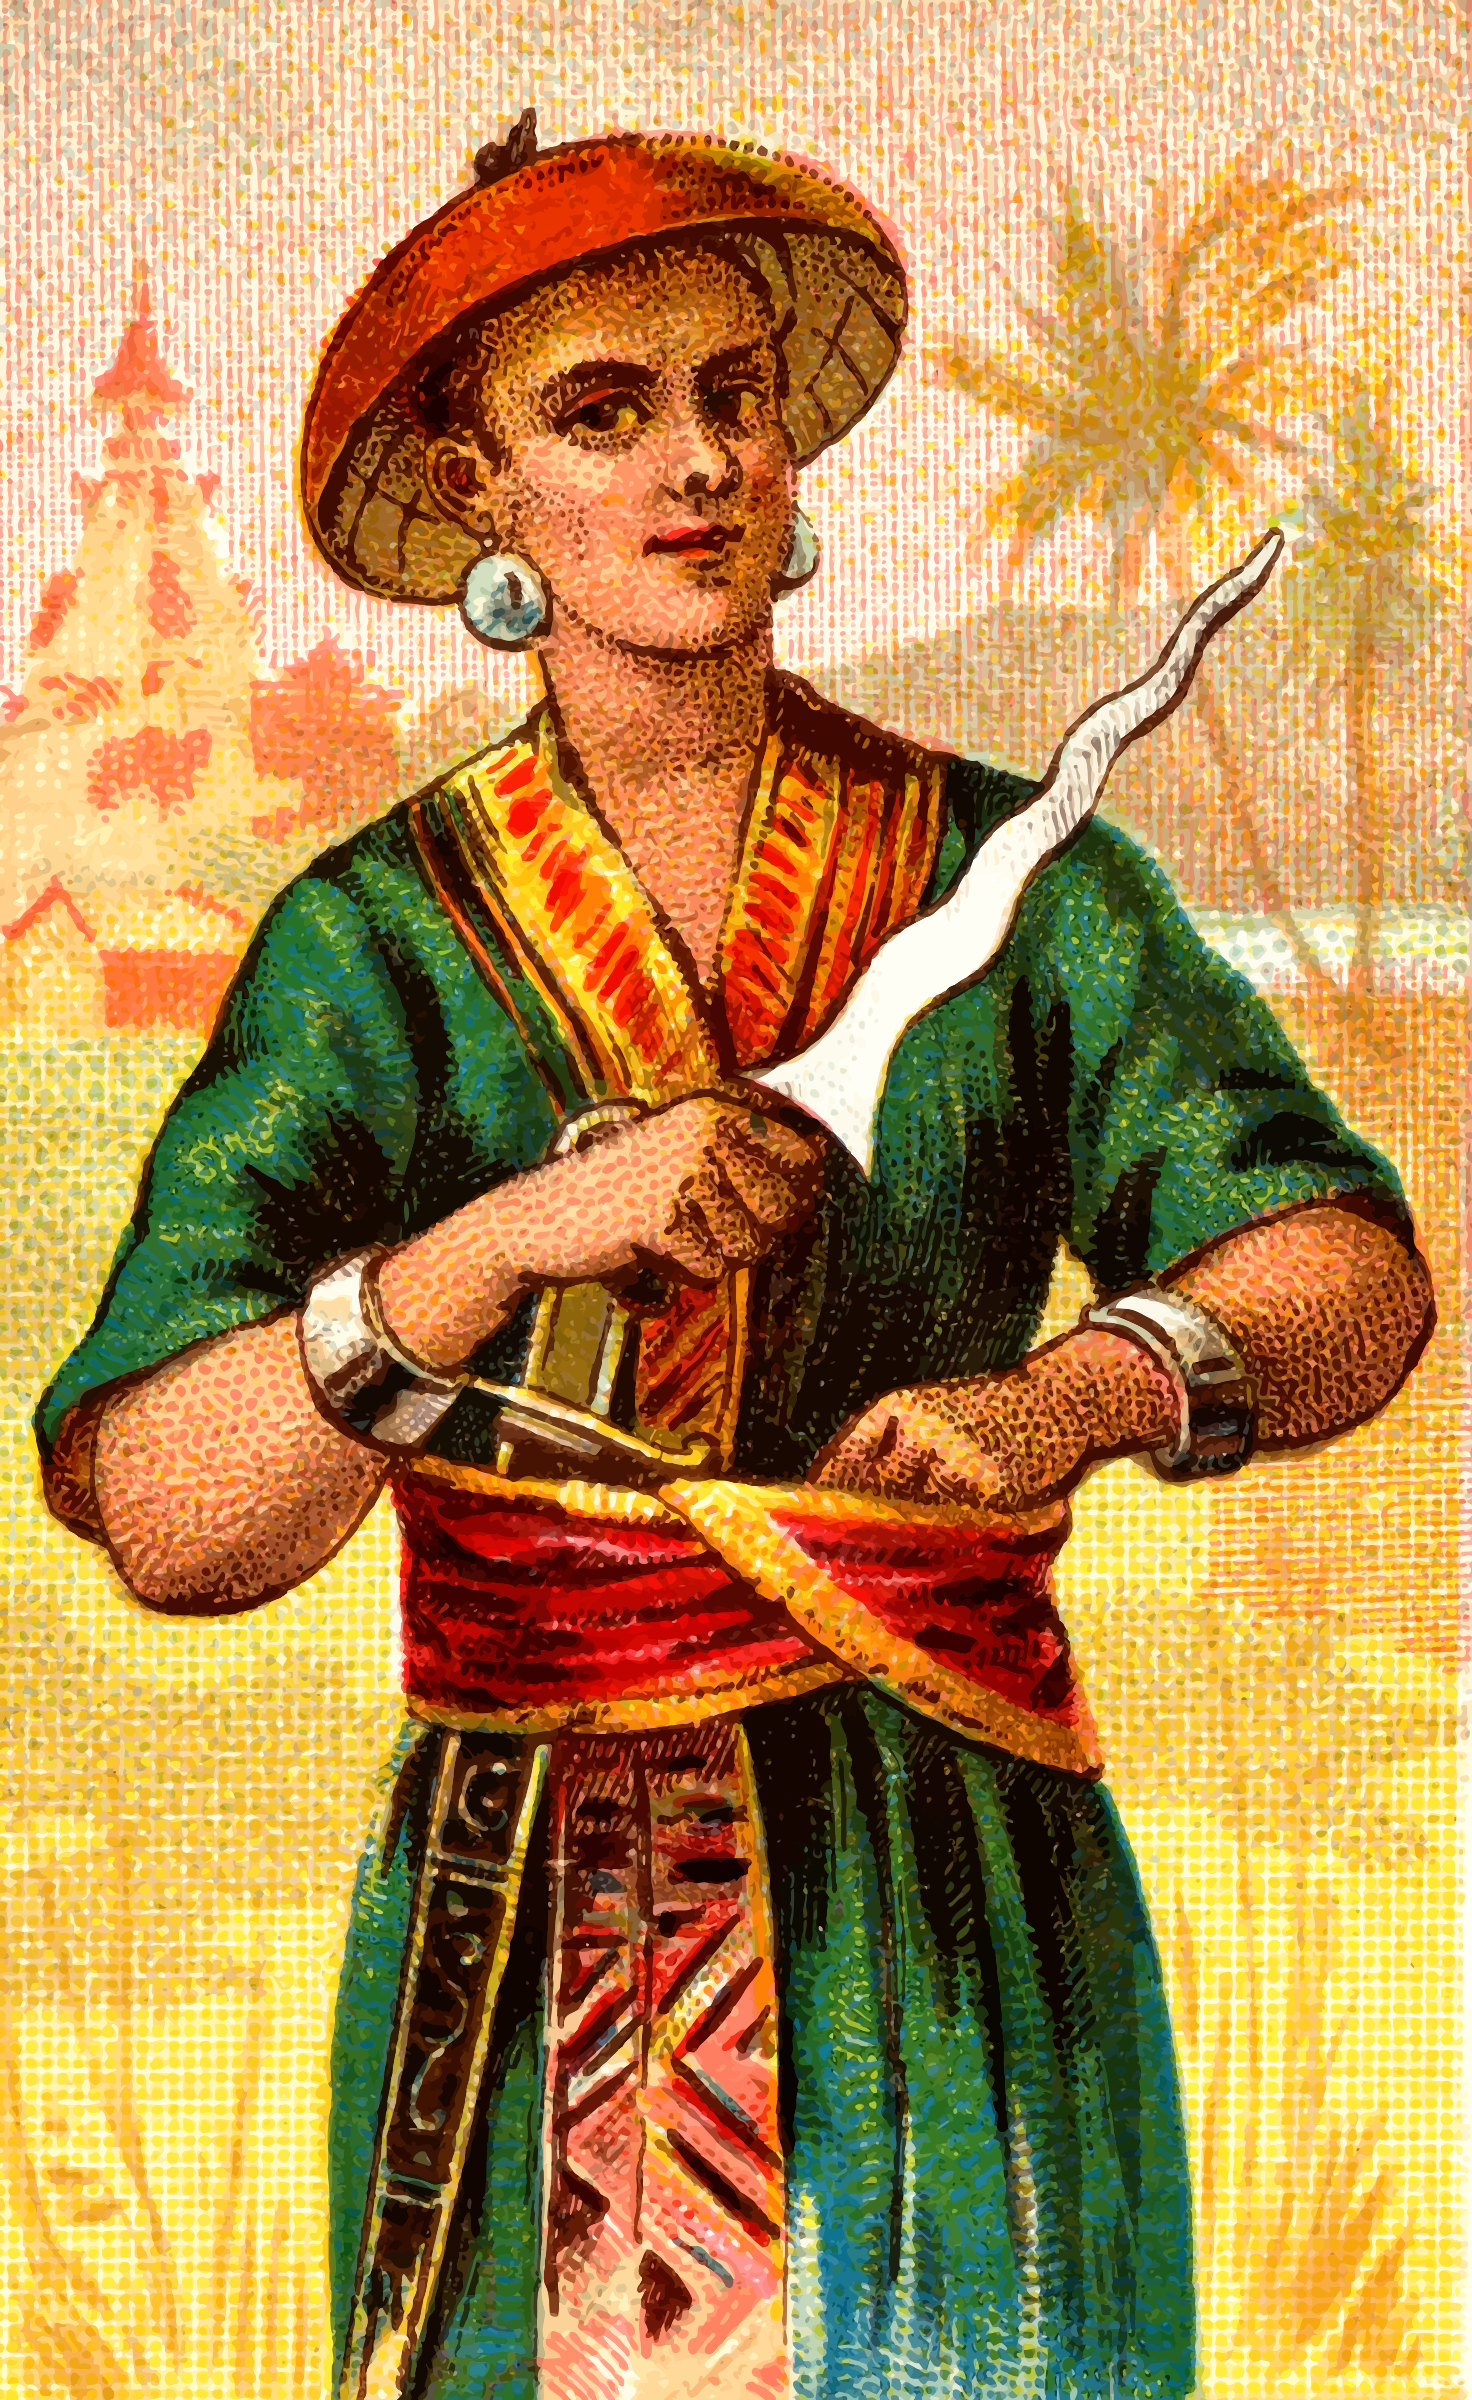 Cigarette card - Malay Creese by Firkin